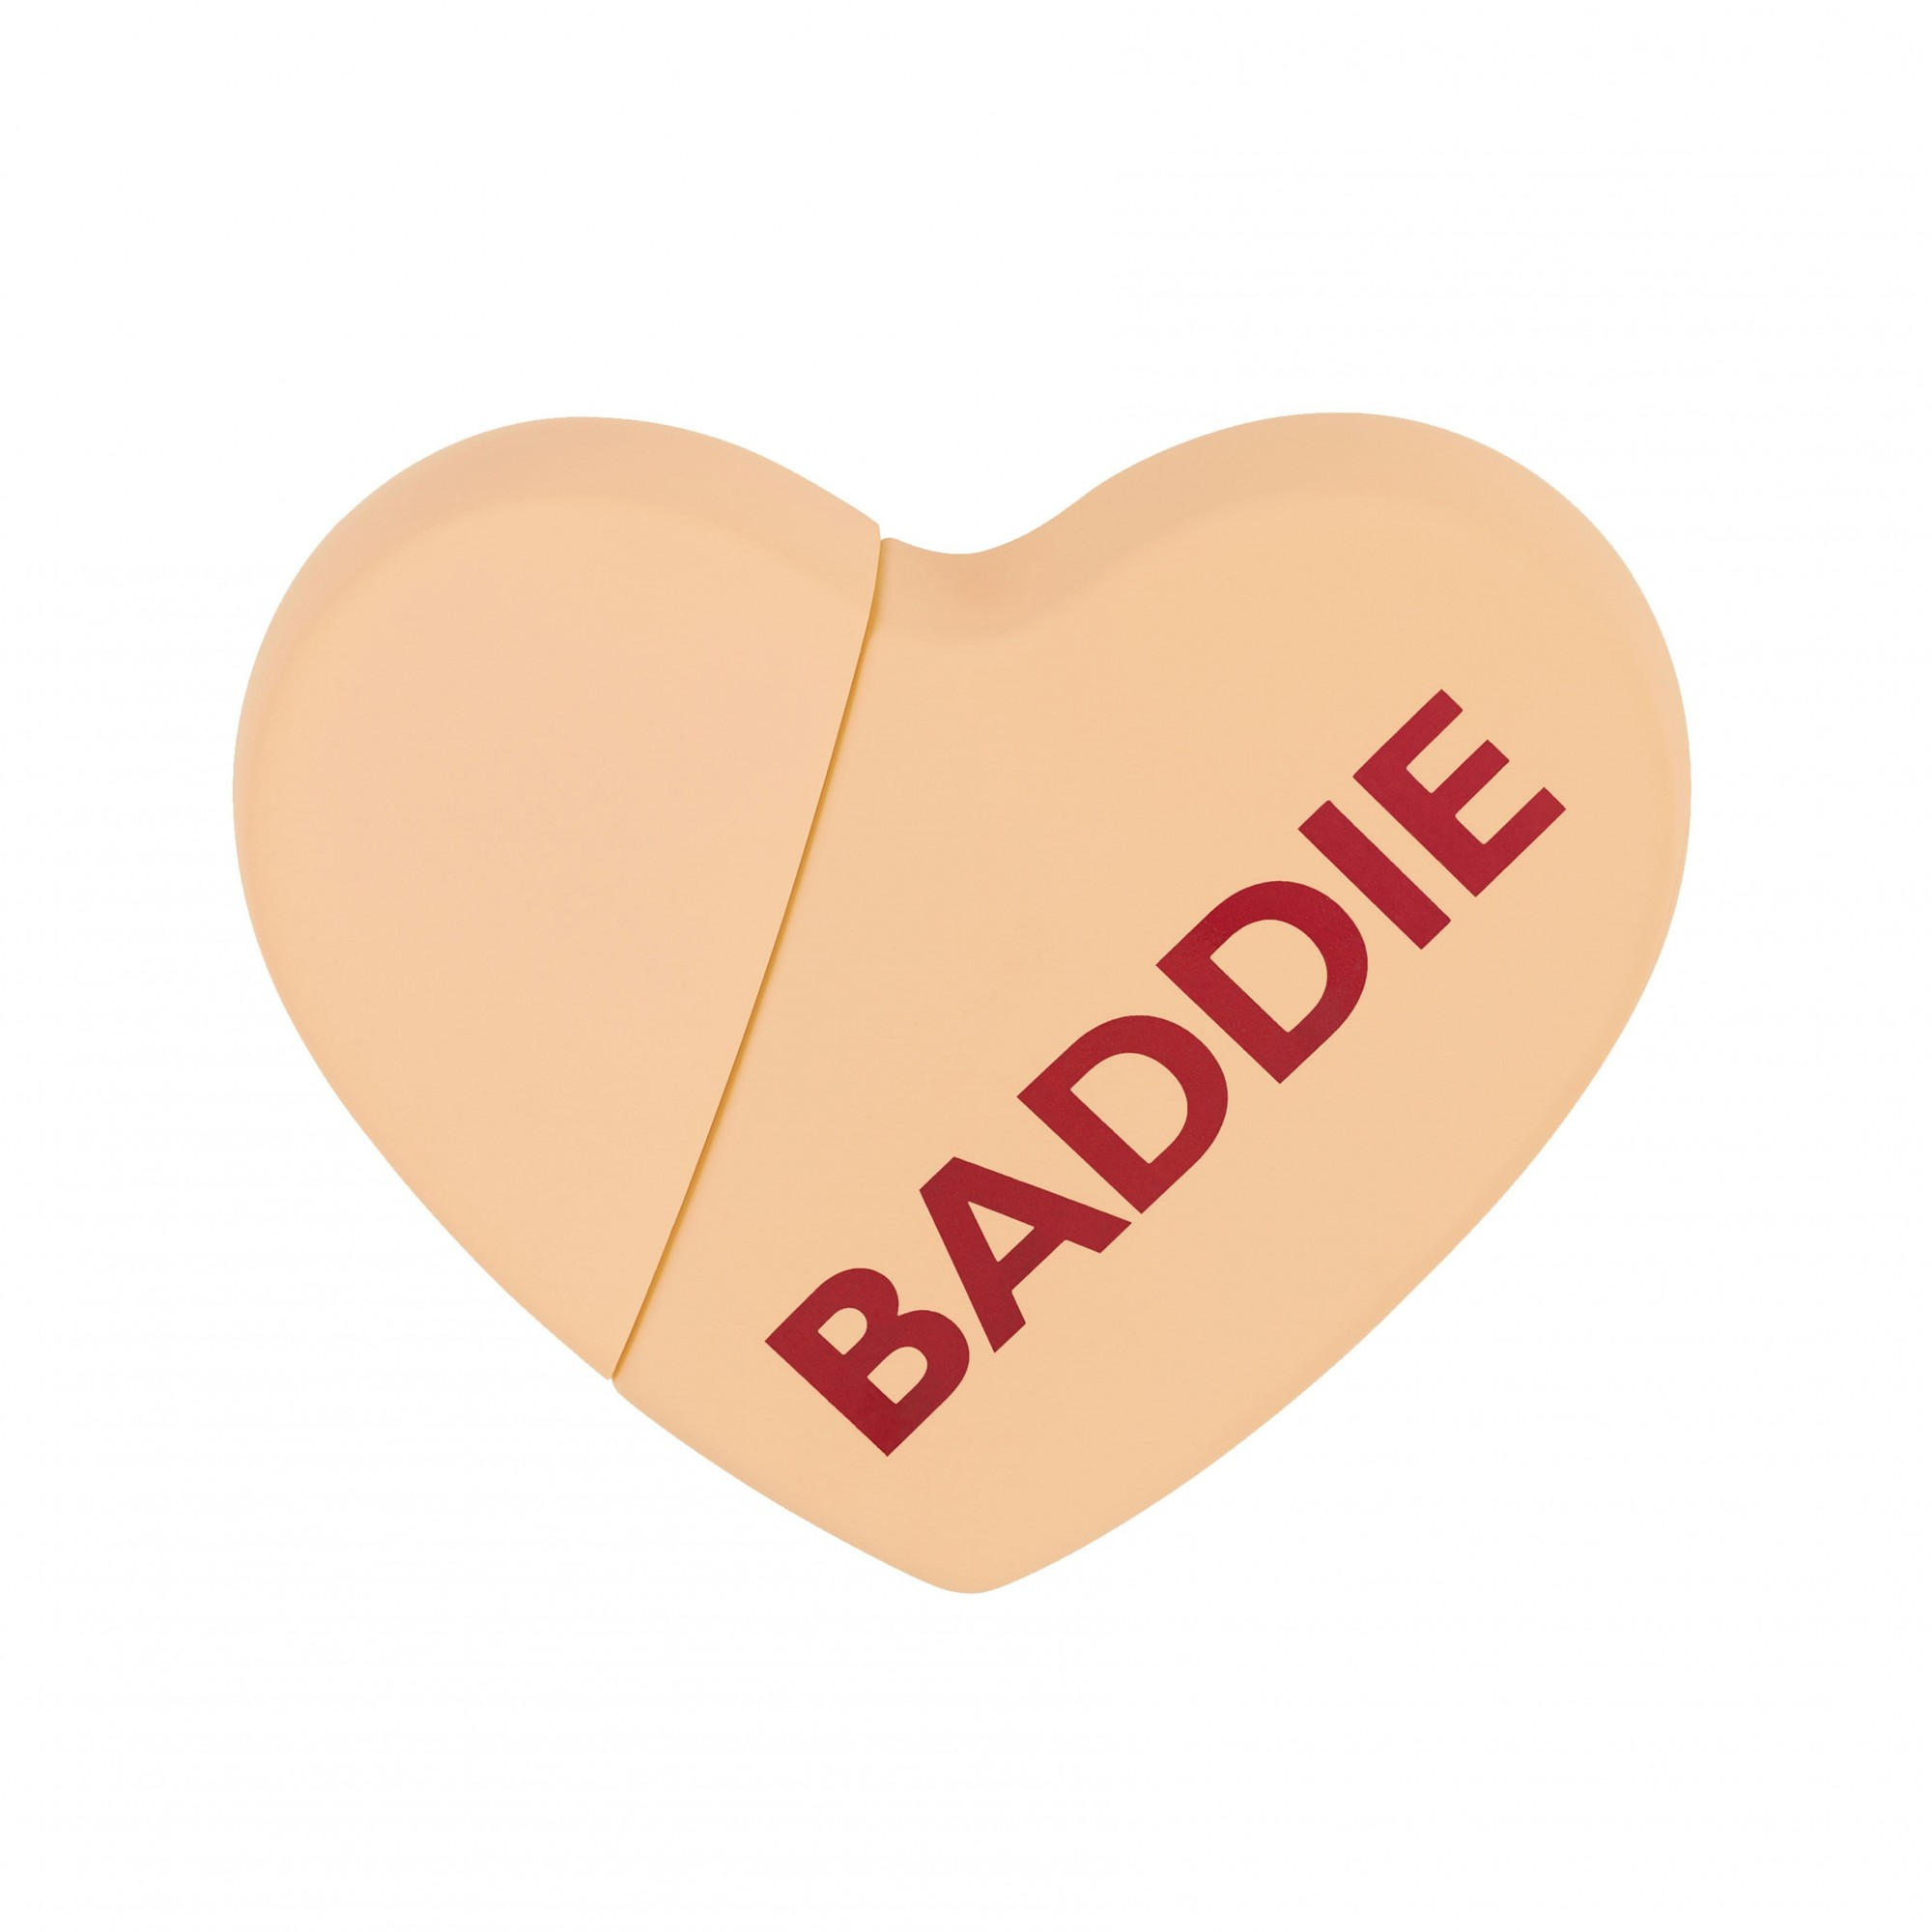 KKW Fragrance Hearts Baddie